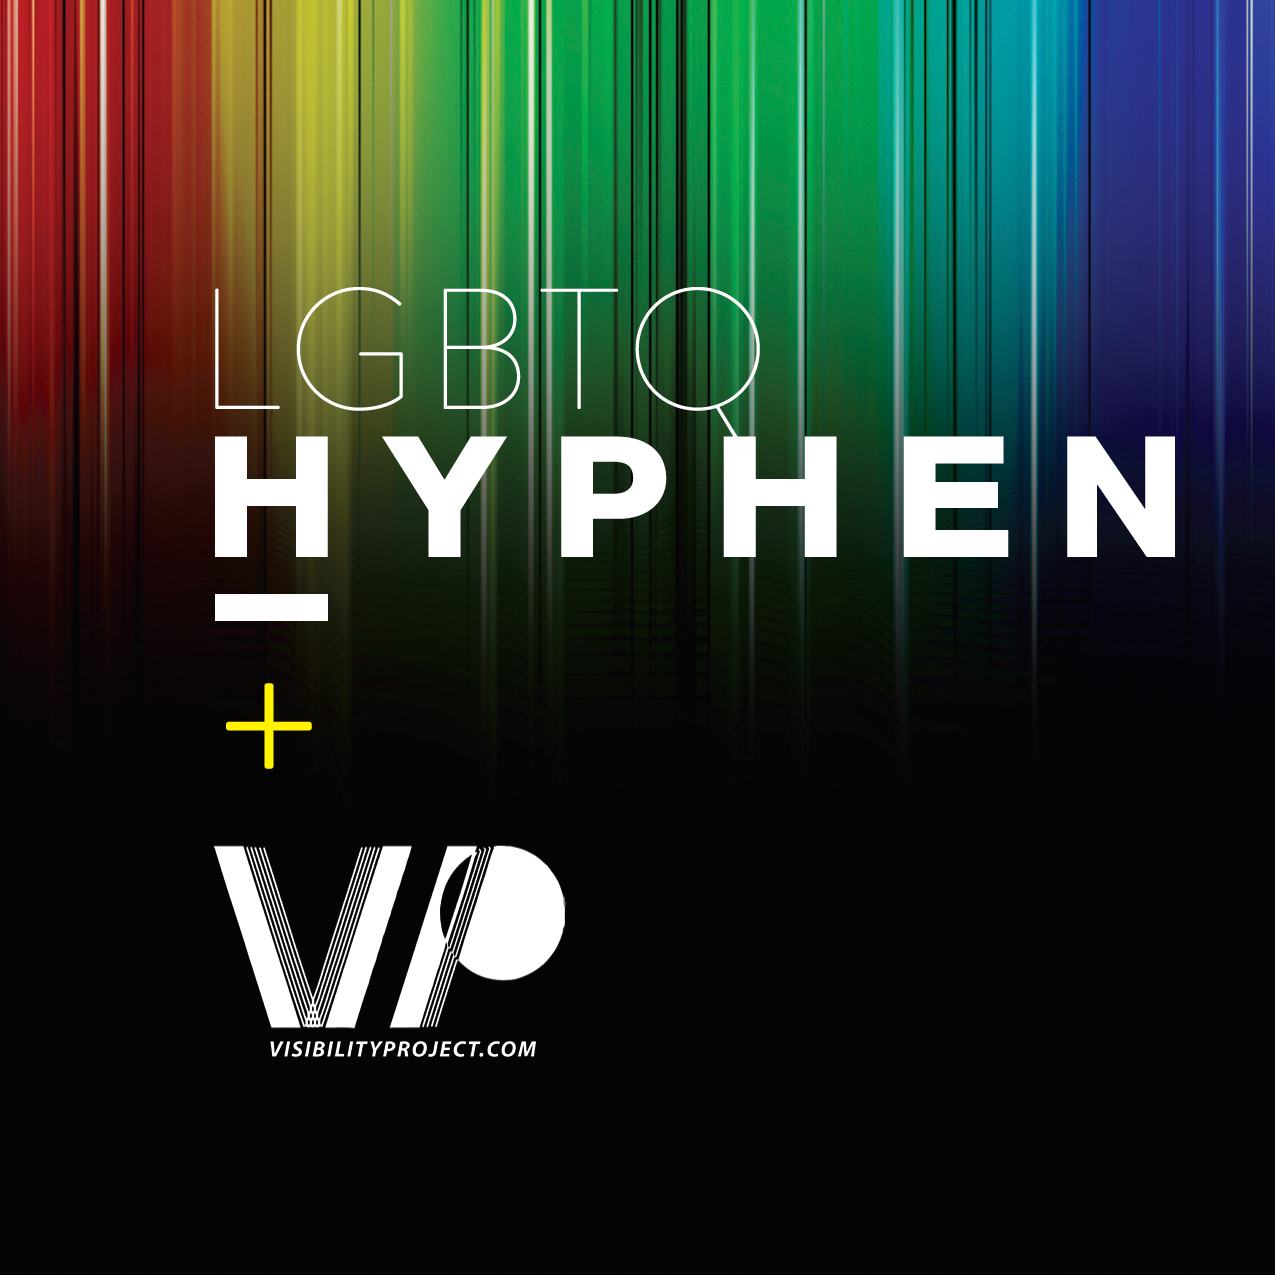 LGBTQHyphen_VisibilityProject_Square